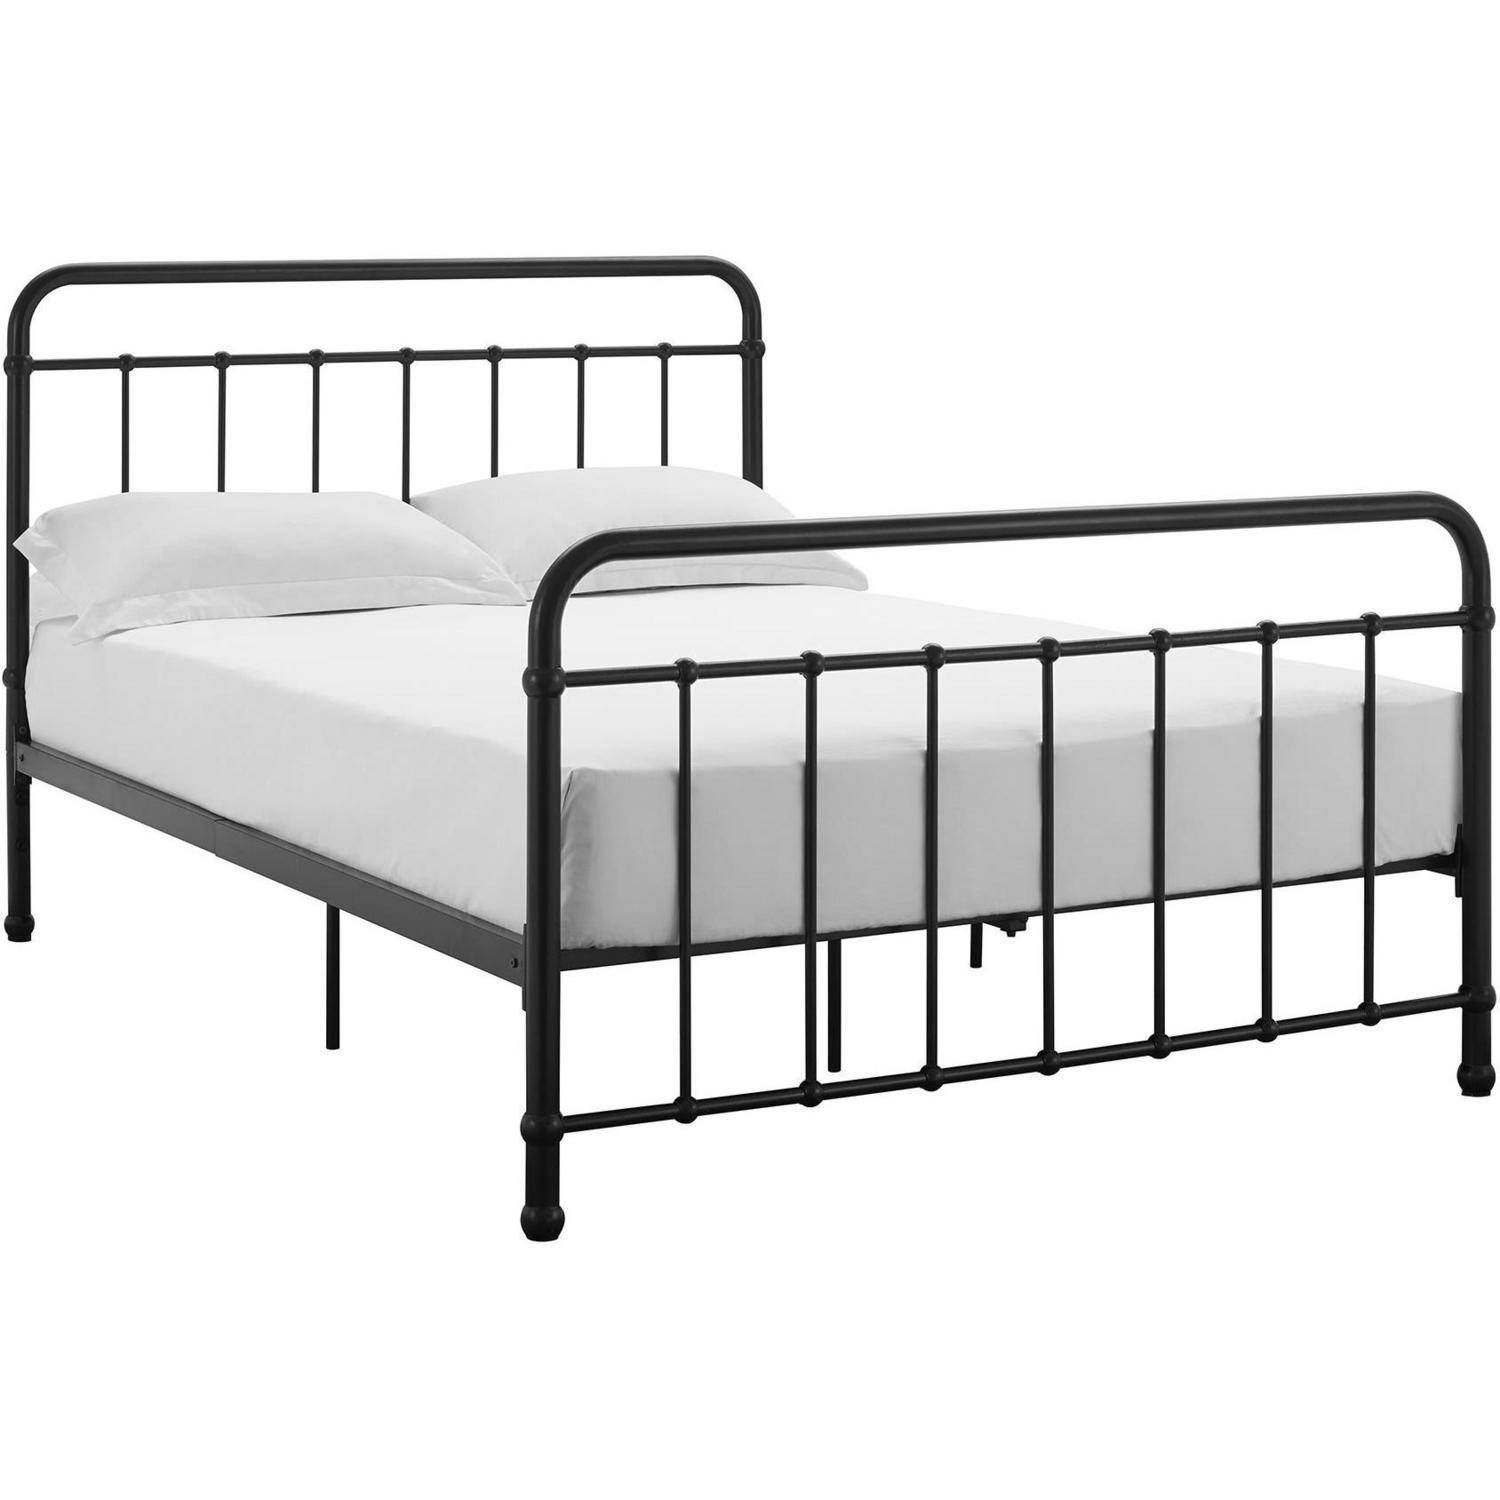 Homes Dorm Space Saver Twin Size Metal Bed Frame Furniture